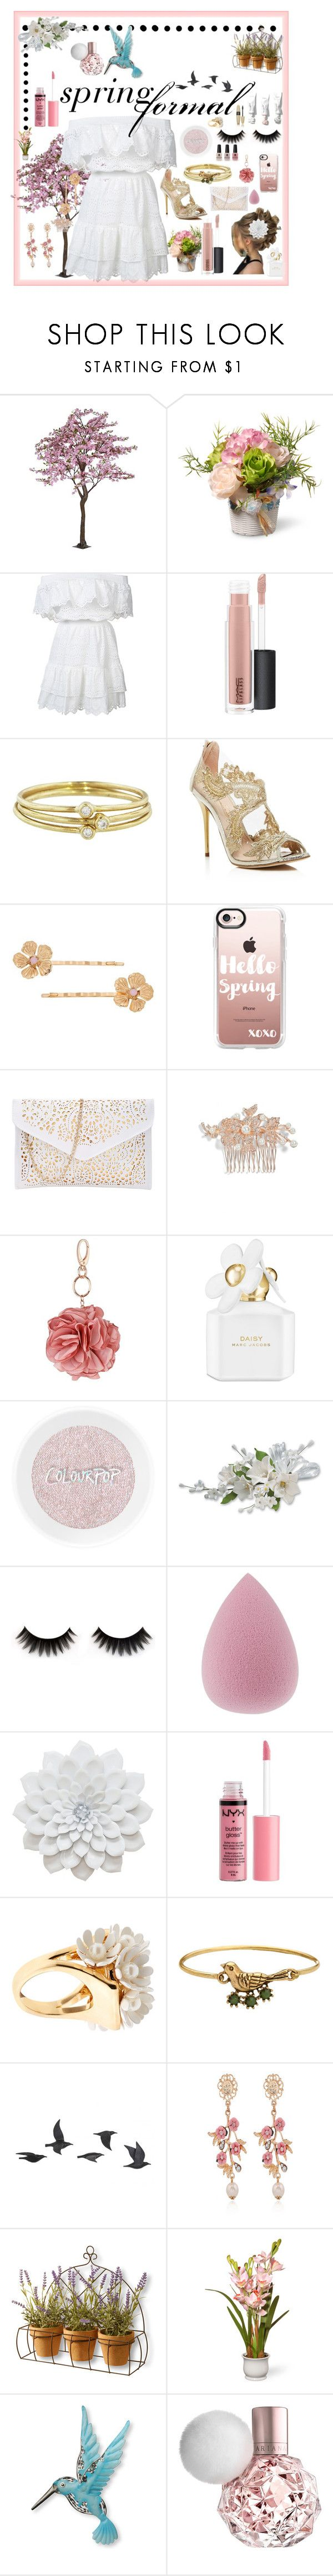 """Competition ~ Spring Formal"" by randomgirl03 ❤ liked on Polyvore featuring National Tree Company, LoveShackFancy, MAC Cosmetics, Jennifer Meyer Jewelry, Oscar de la Renta, LC Lauren Conrad, Casetify, Nina, Miss Selfridge and Marc Jacobs"